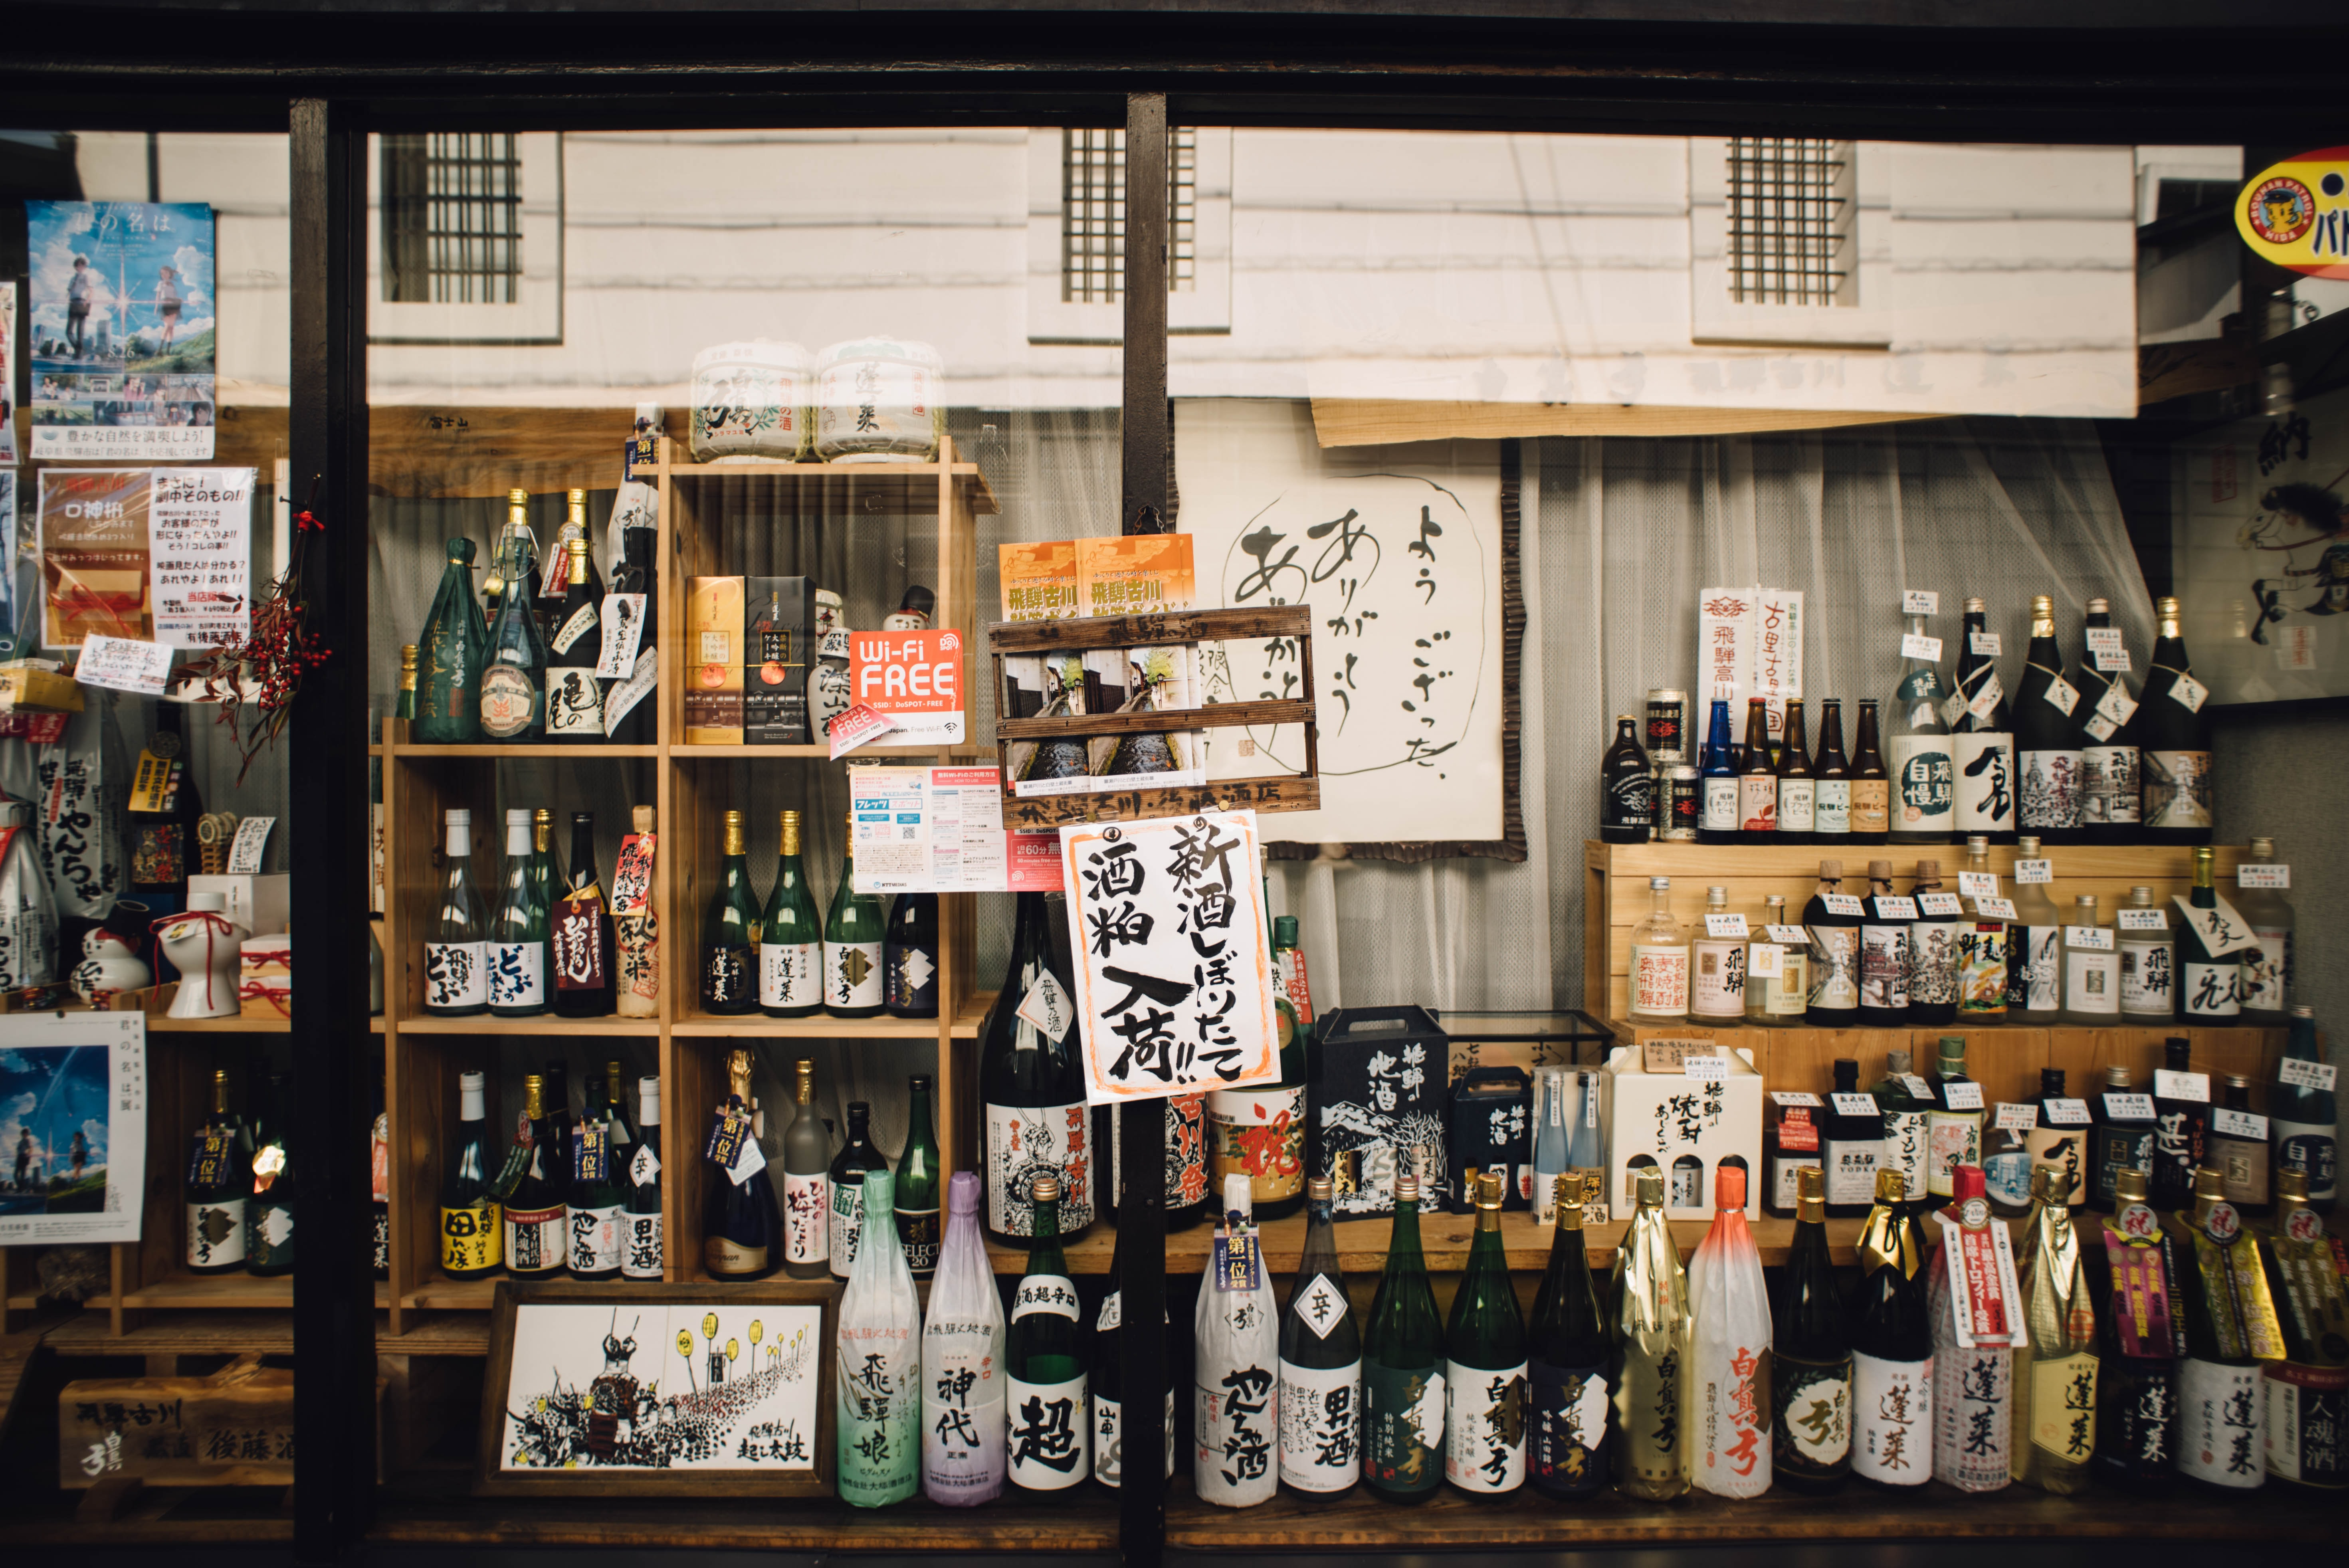 The inside of an Oriental store with various types of alcohol